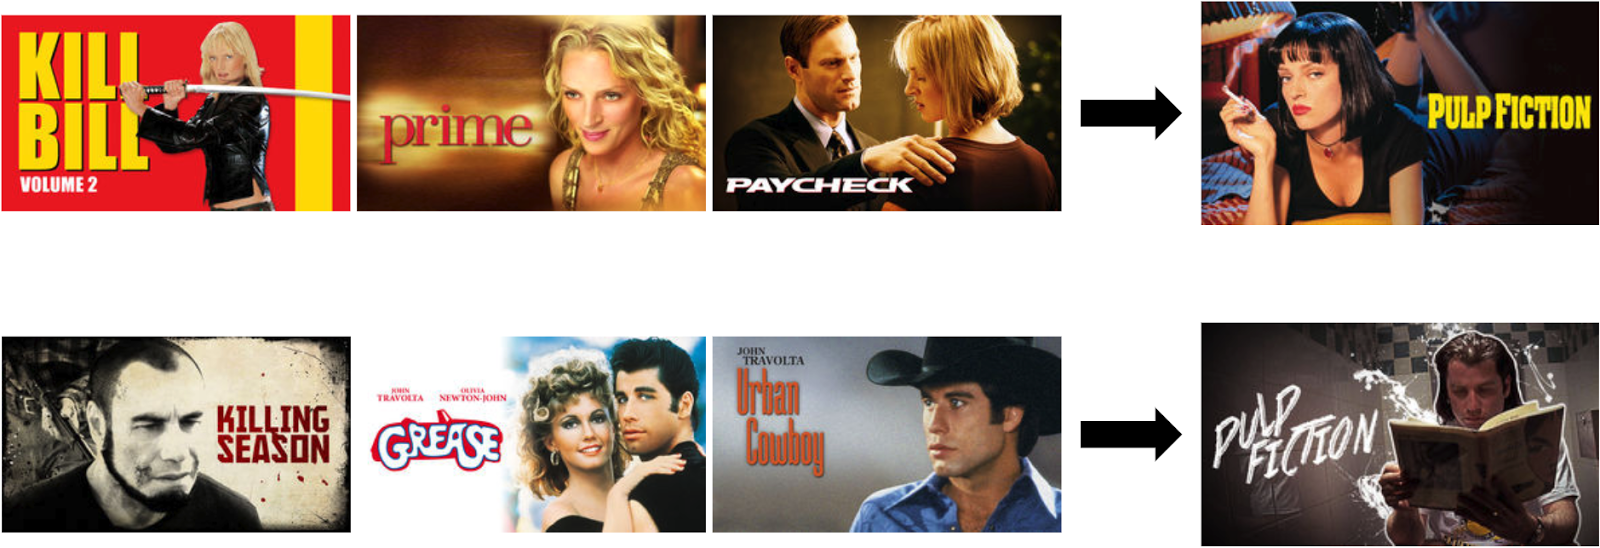 travolta or thurman - actionable ways to deliver personalised marketing right now